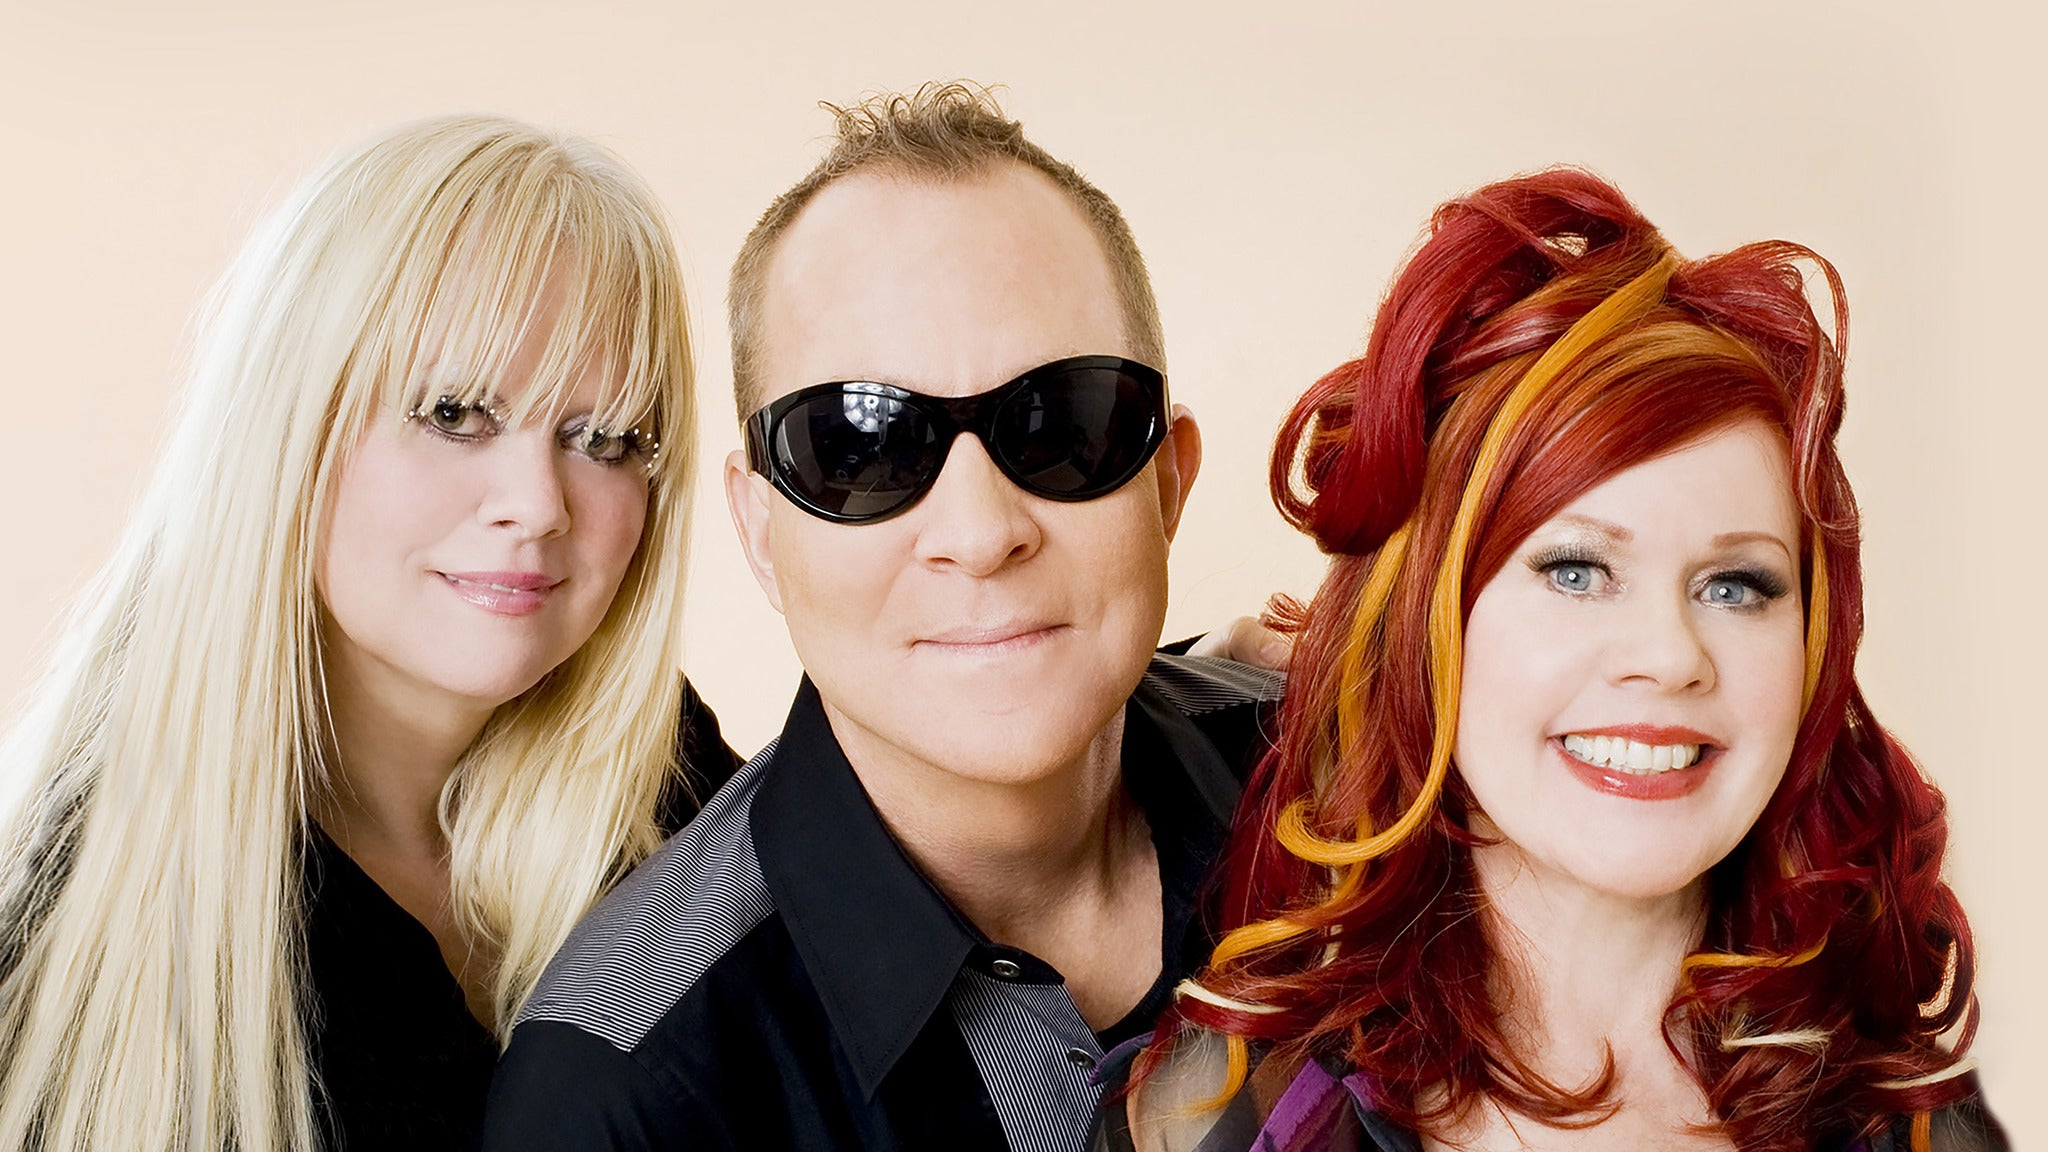 40th Anniversary Tour The B-52's with Special Guests OMD and Berlin